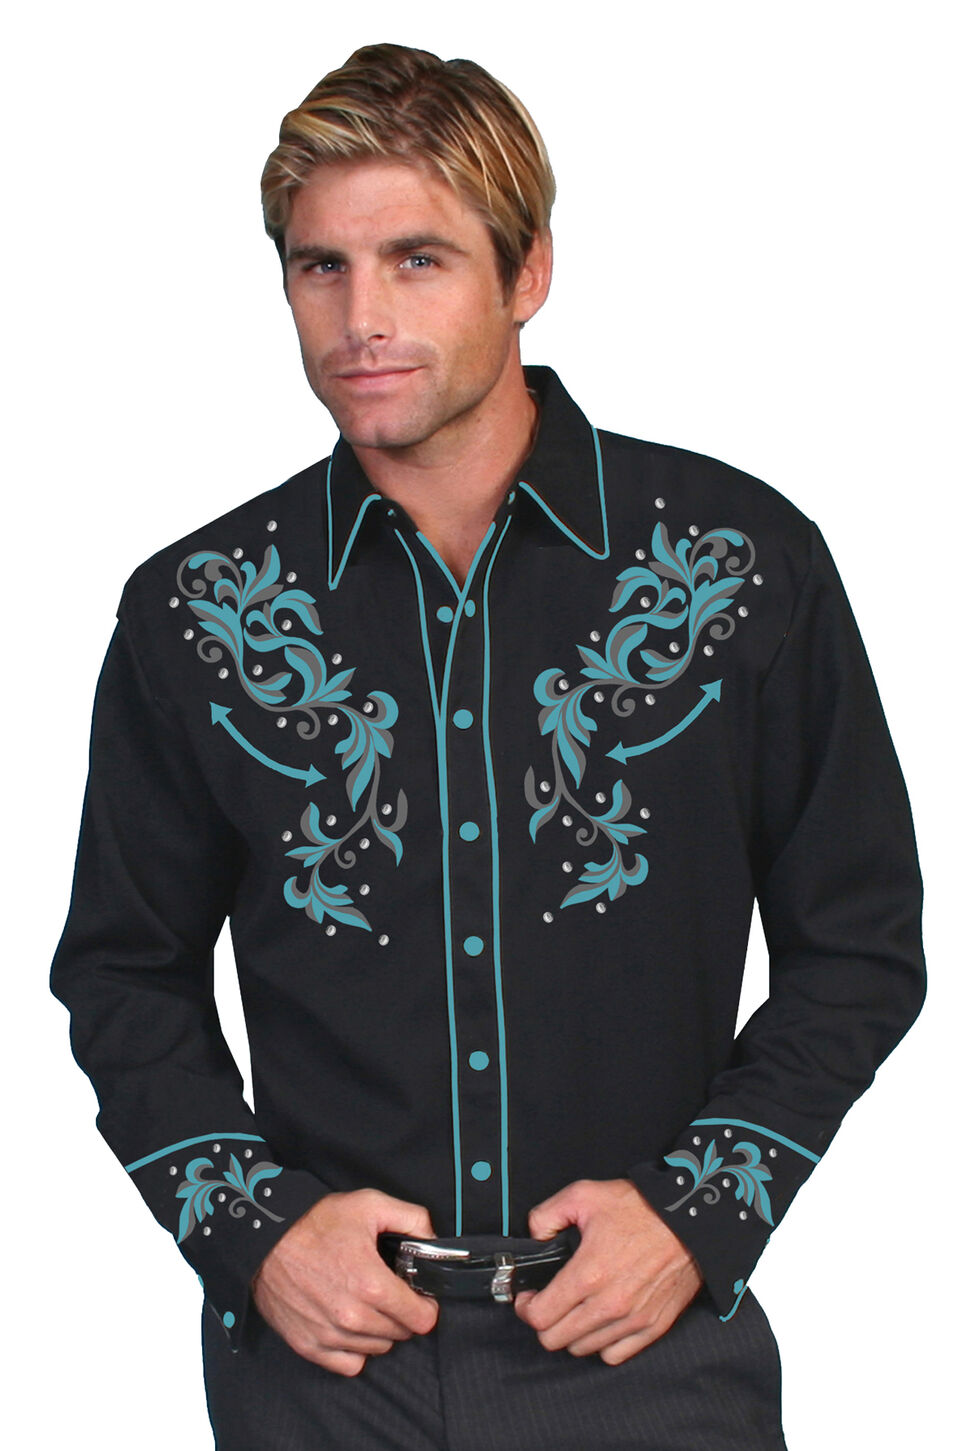 Scully Turquoise Embroidered and Studded Shirt - Big and Tall, Black, hi-res